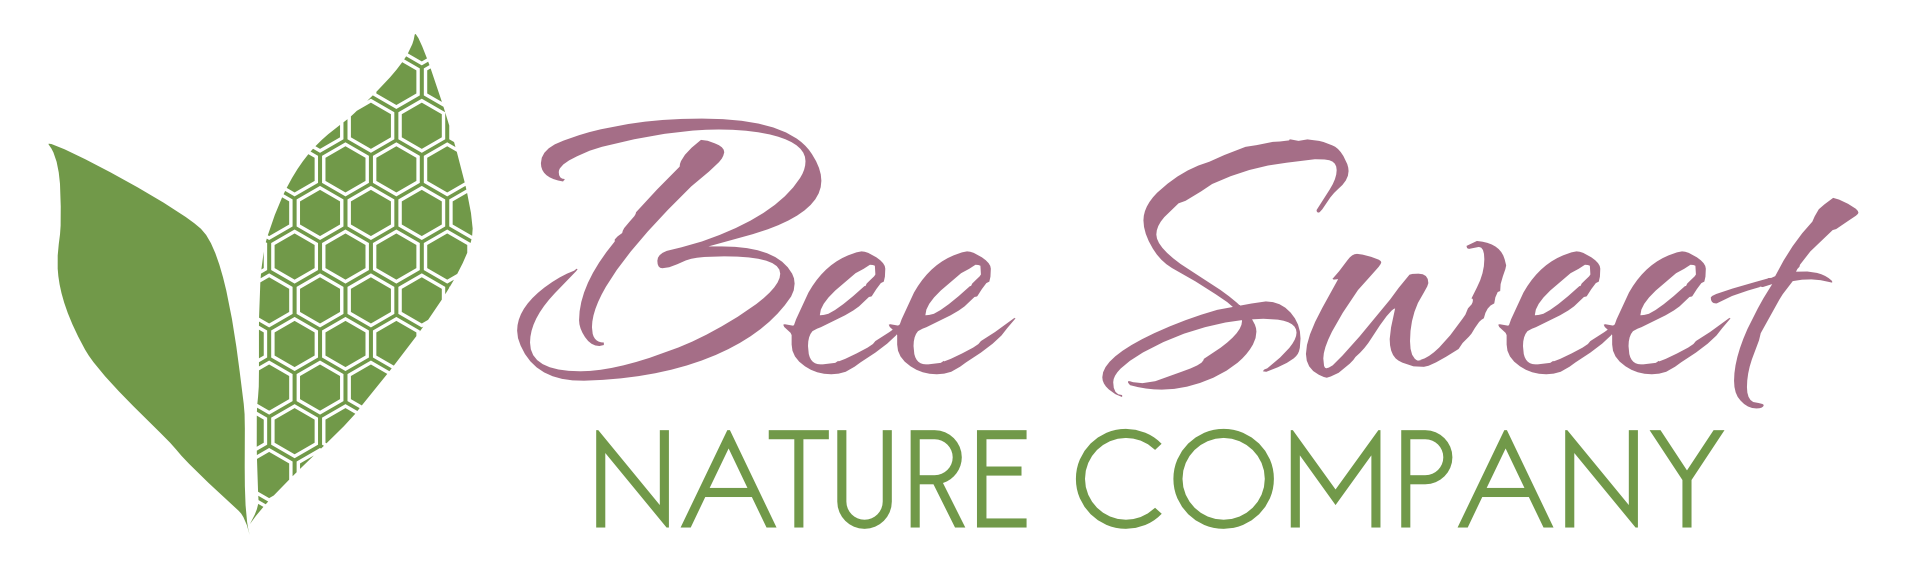 Bee Sweet Nature Co. - Ontario Native Tree Nursery